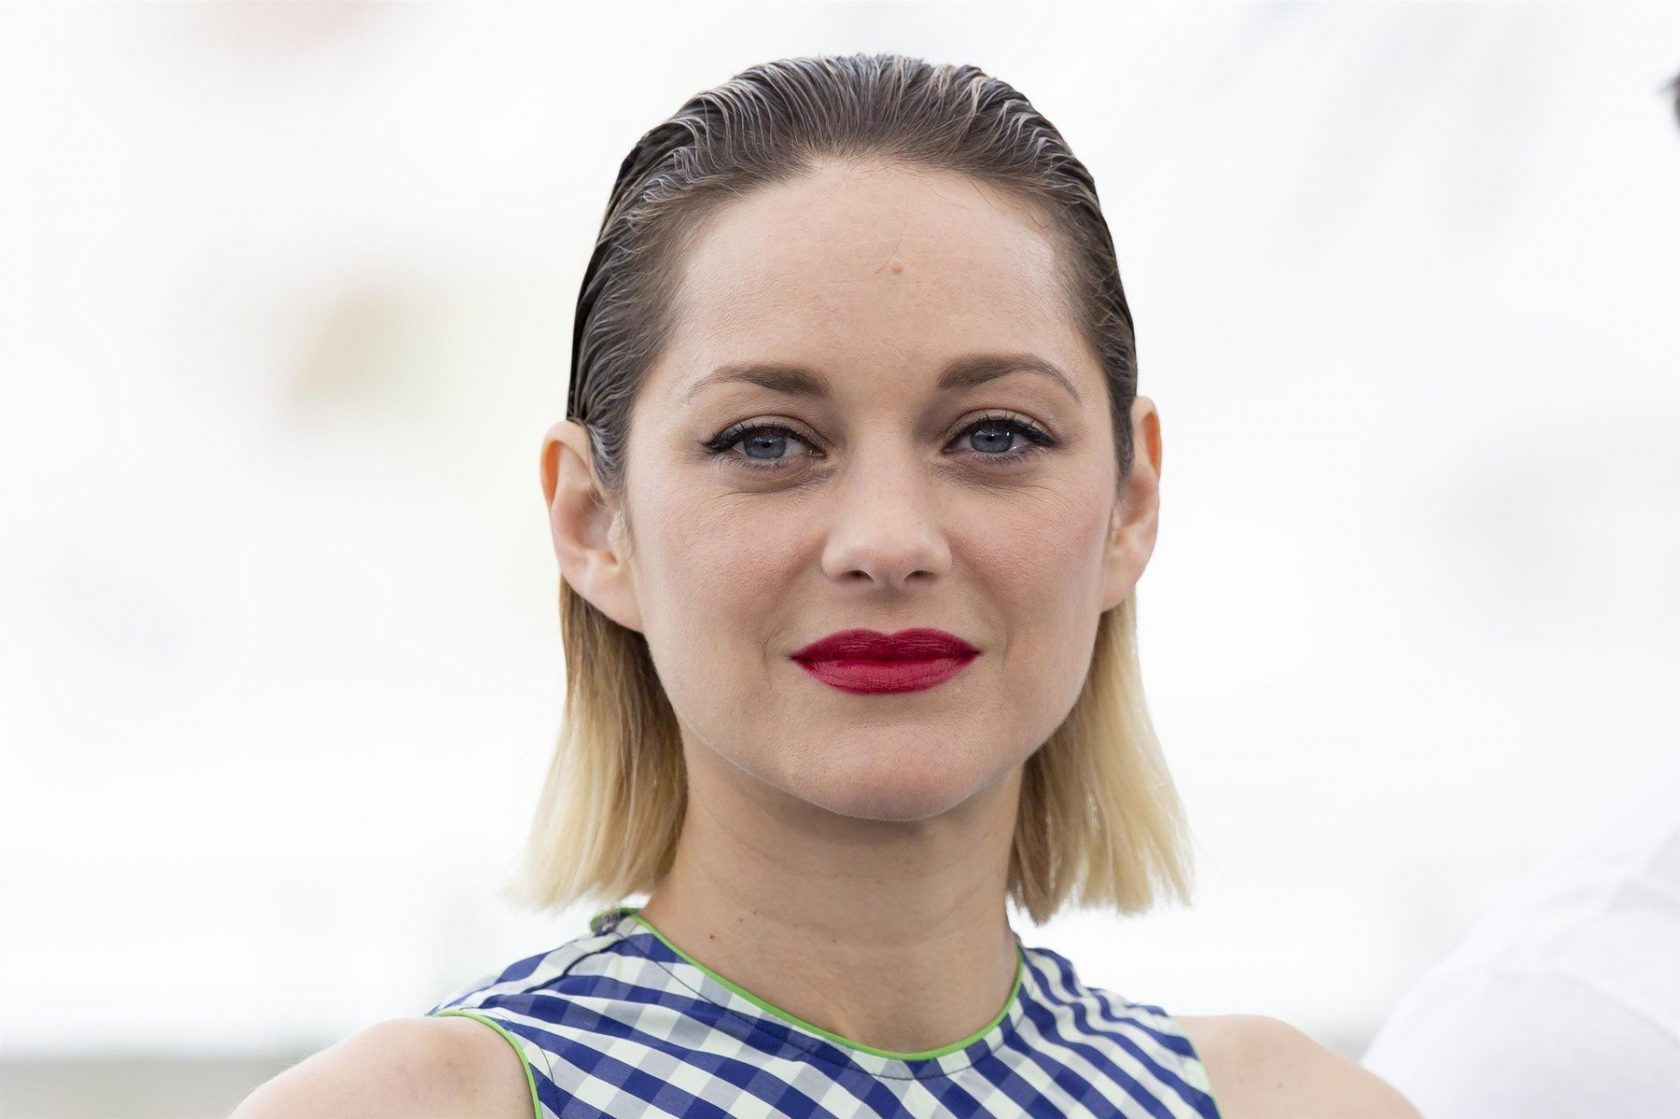 BGUK_1232202 - Cannes, FRANCE - Marion Cotillard attends the photocall for the 'Angel Face (Gueule D'Ange)' during the 71st annual Cannes Film Festival at Palais des Festivals on May 12, 2018 in Cannes, France Pictured: Marion Cotillard BACKGRID UK 12 MAY 2018, Image: 371411975, License: Rights-managed, Restrictions: , Model Release: no, Credit line: Profimedia, Xposurephotos